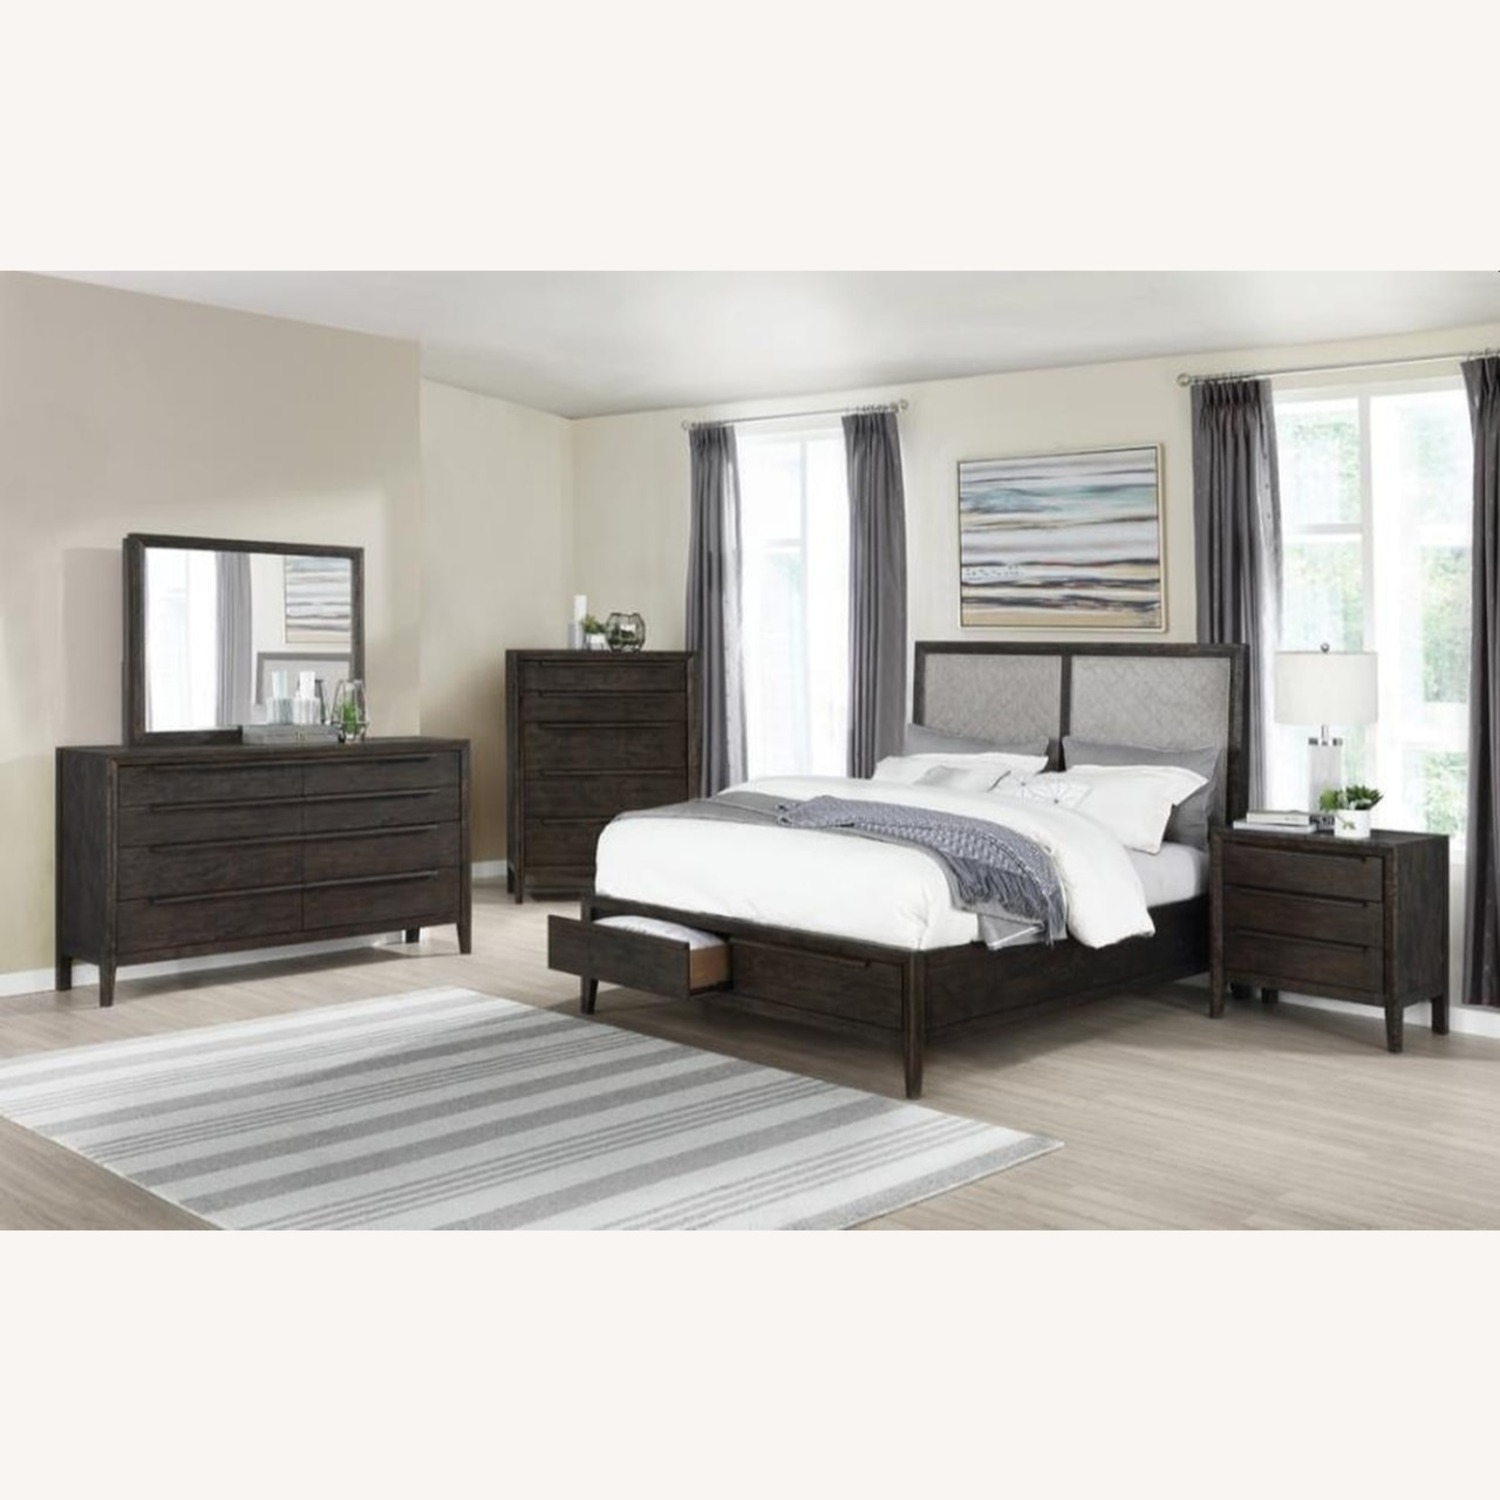 5-Drawer Chest In French Press Finish - image-2